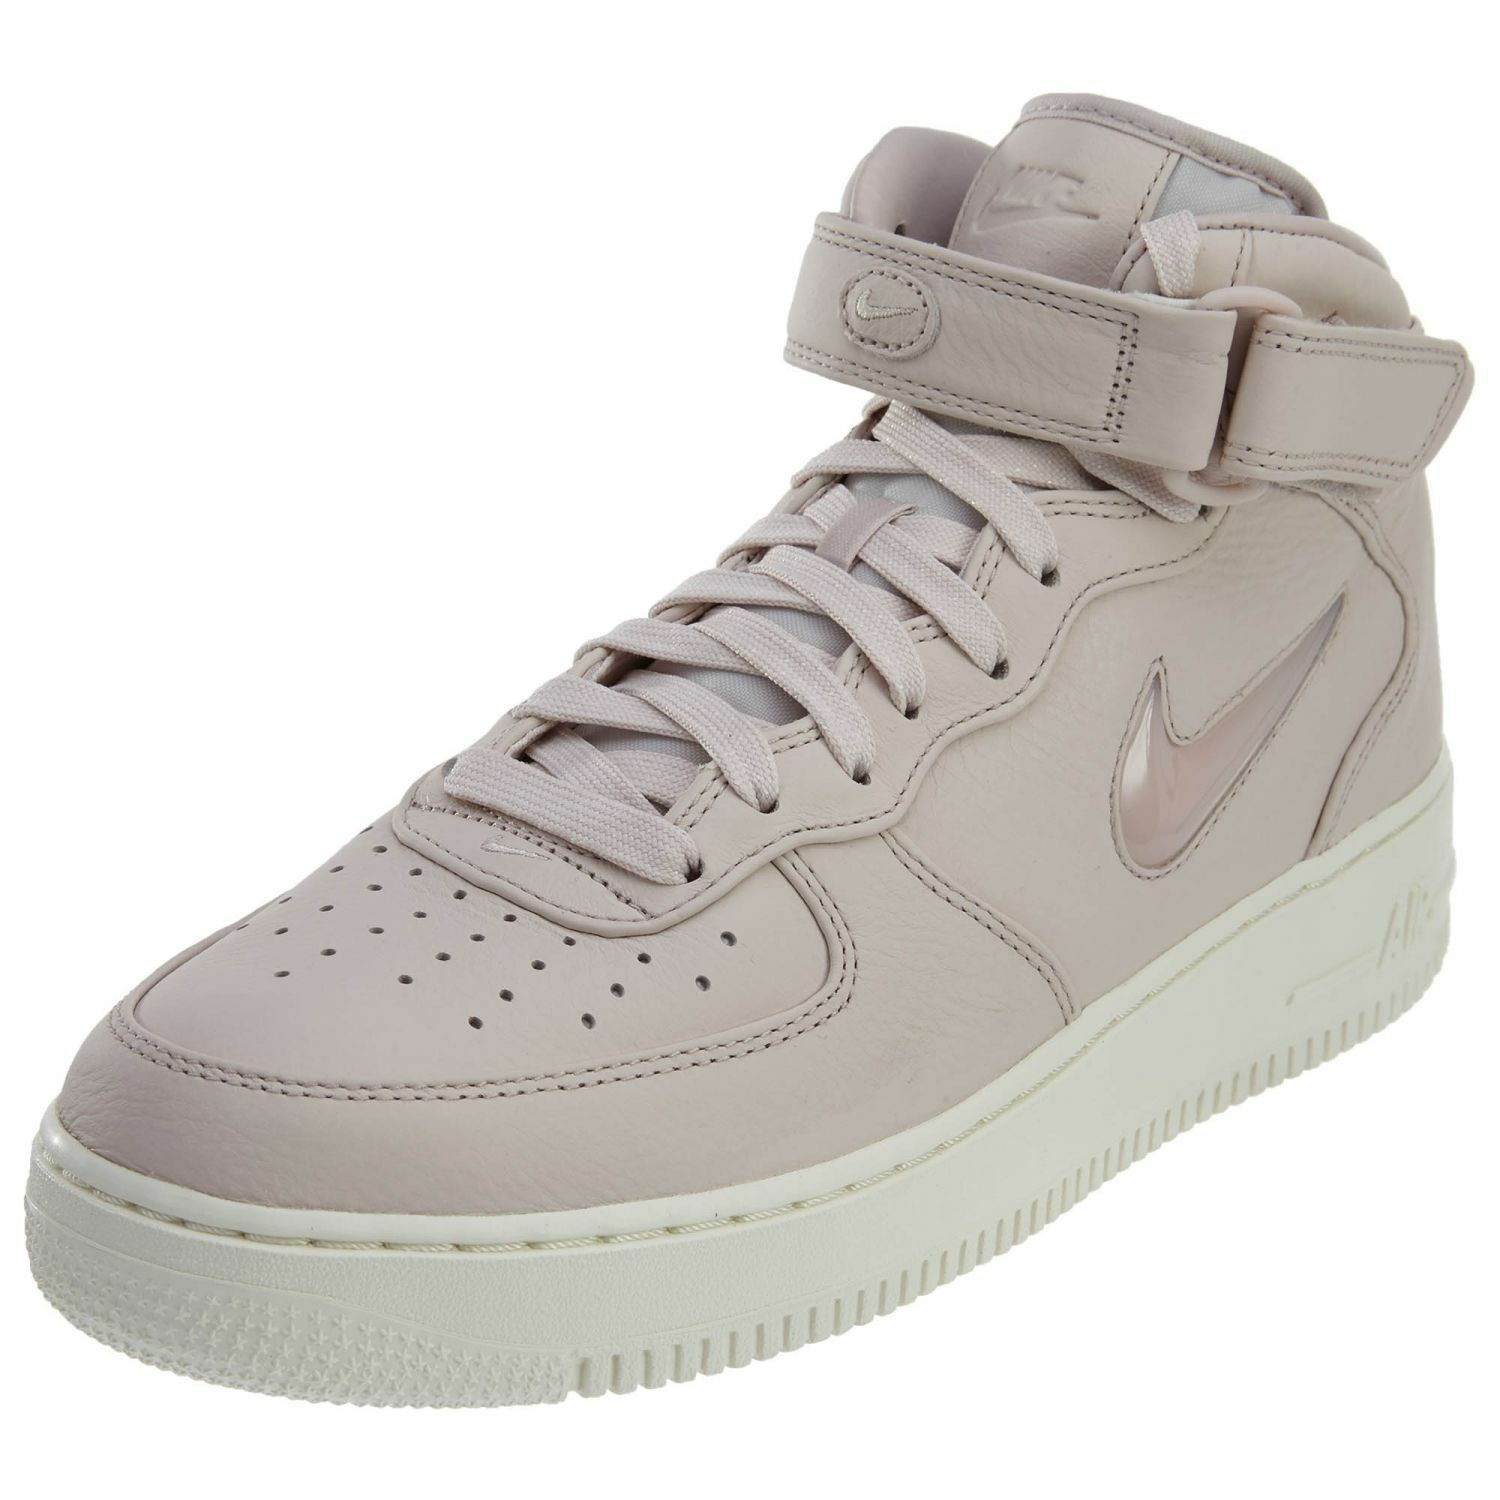 Nike Air Force 1 Mid Retro PRM Men's Snekers Shoes Siltstone Red 941913 600